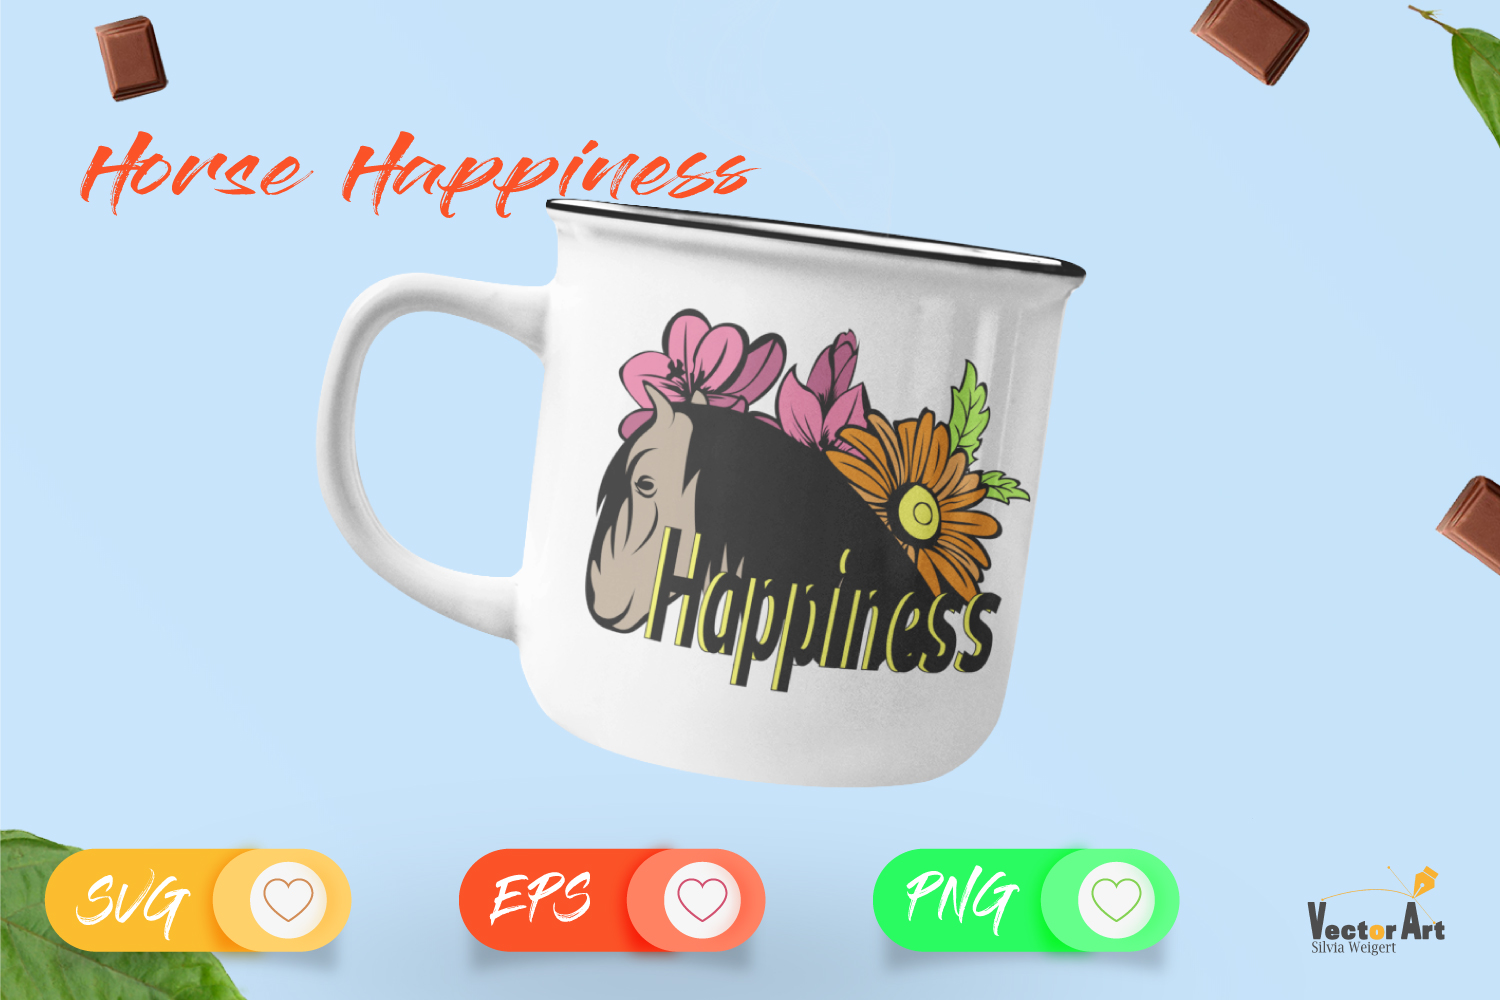 Horse Happiness - Cut File 2 Versions example image 4